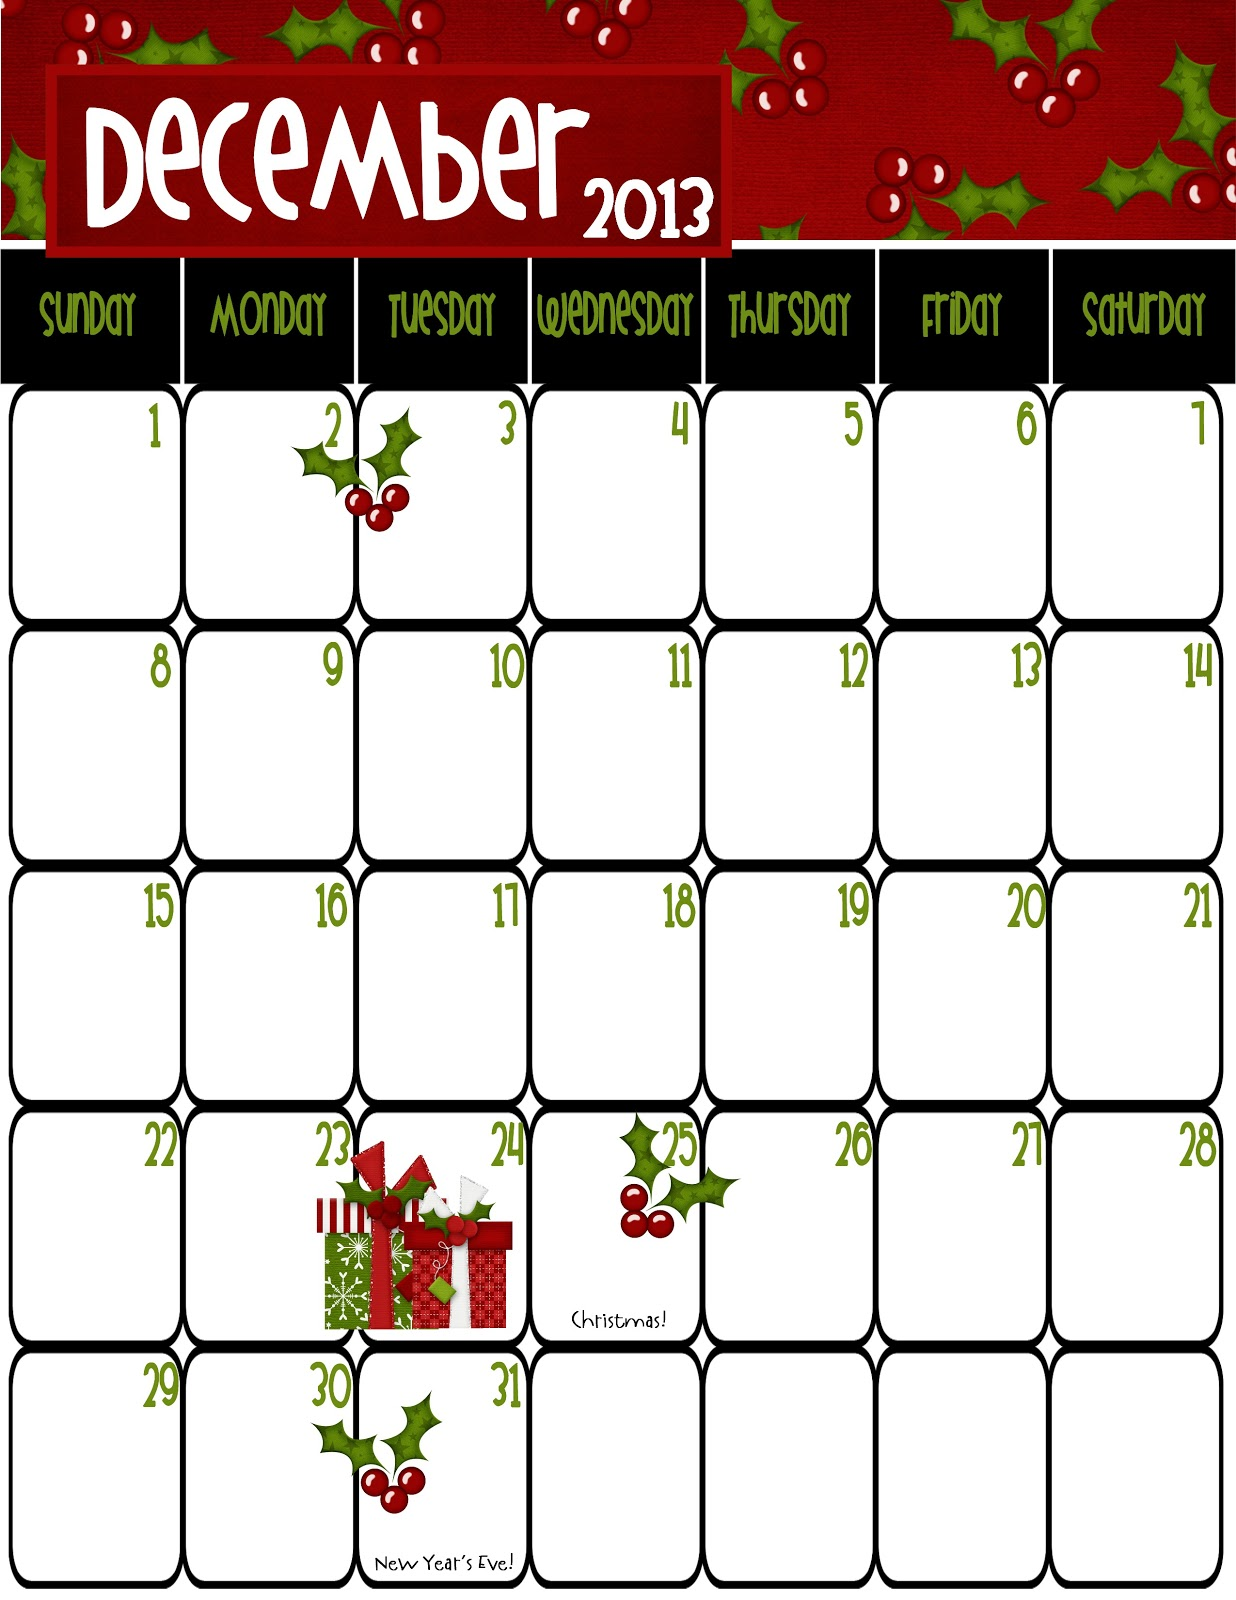 Next Year Calendar : Prepared not scared here s the st set of calendars for